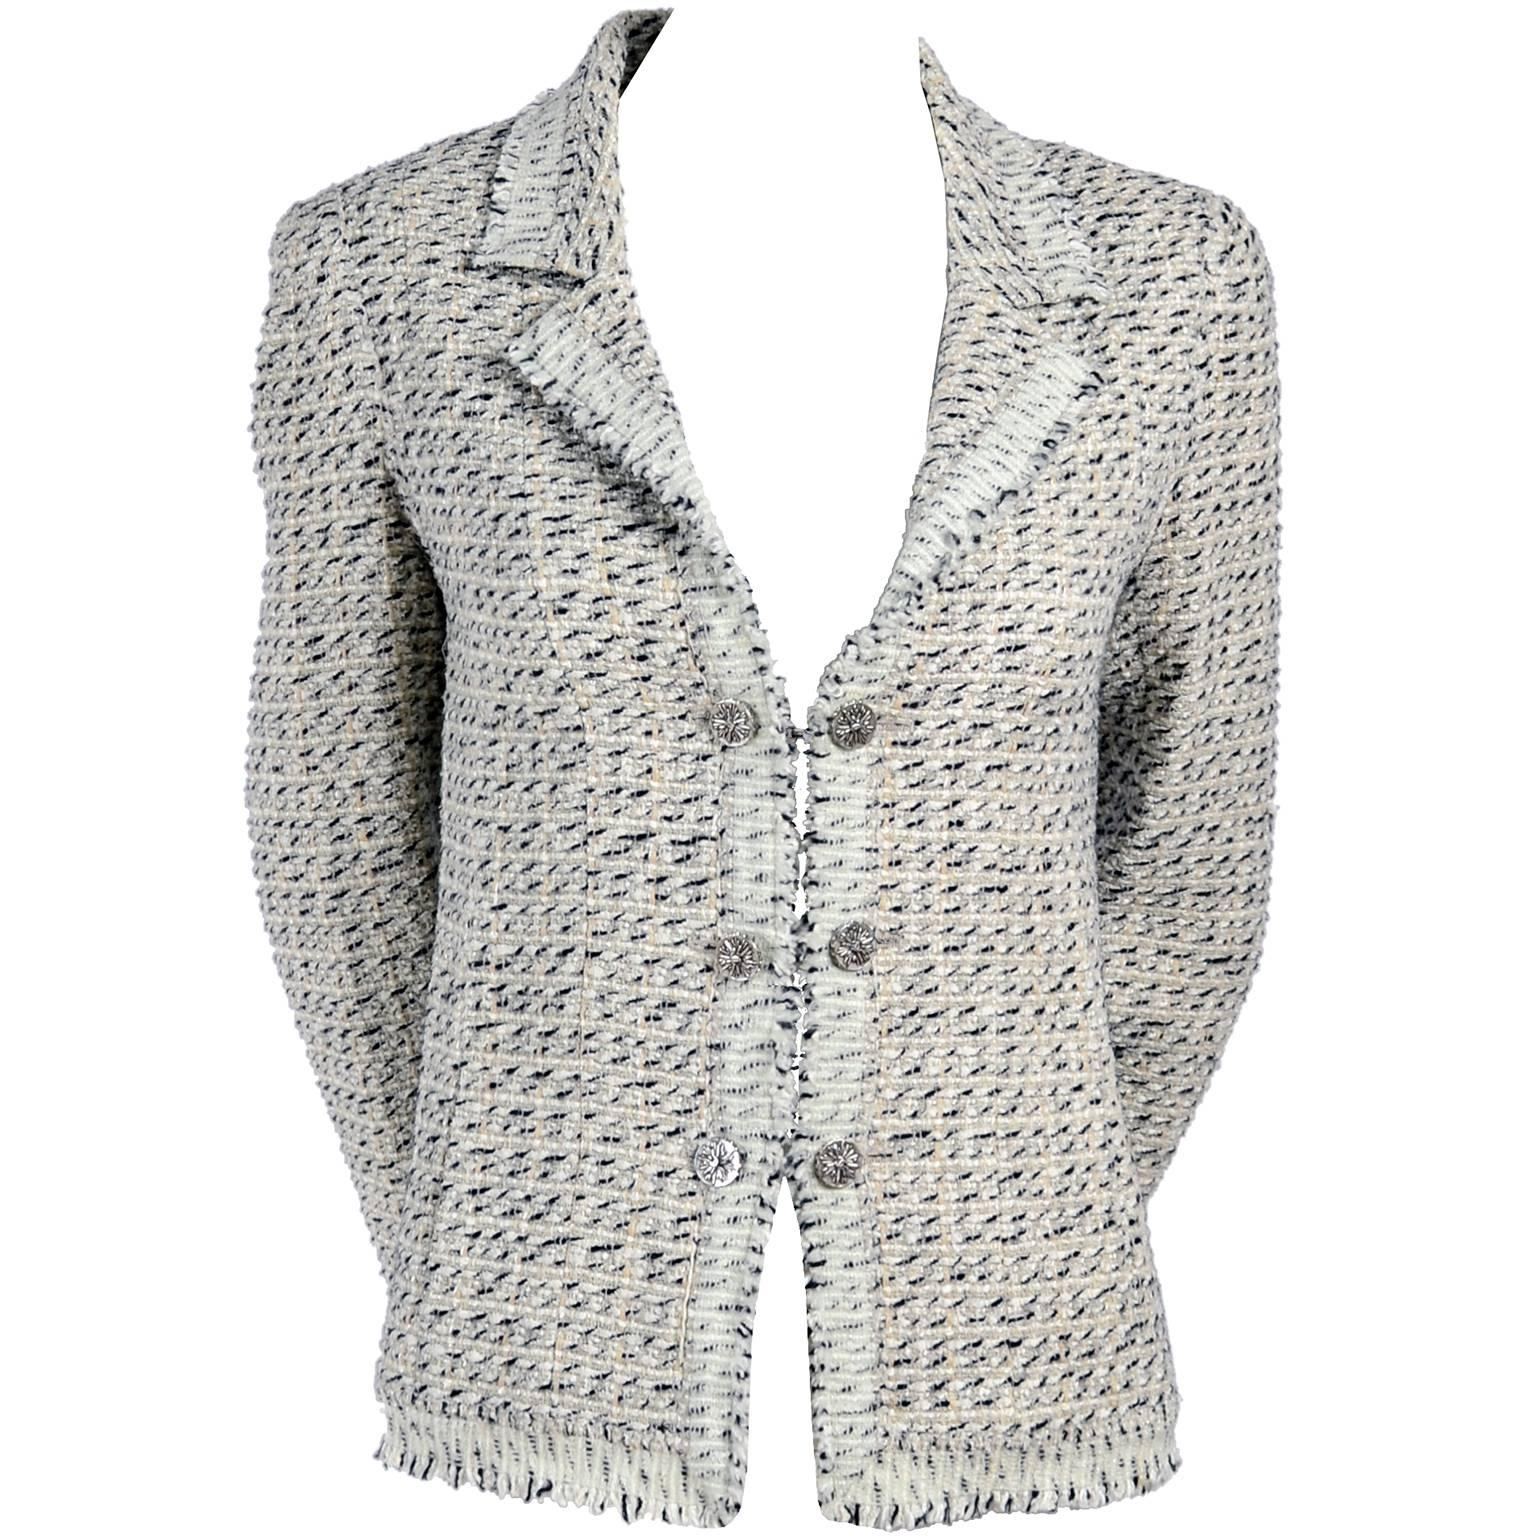 8e021a5cb470 Vintage Chanel Coats and Outerwear - 118 For Sale at 1stdibs